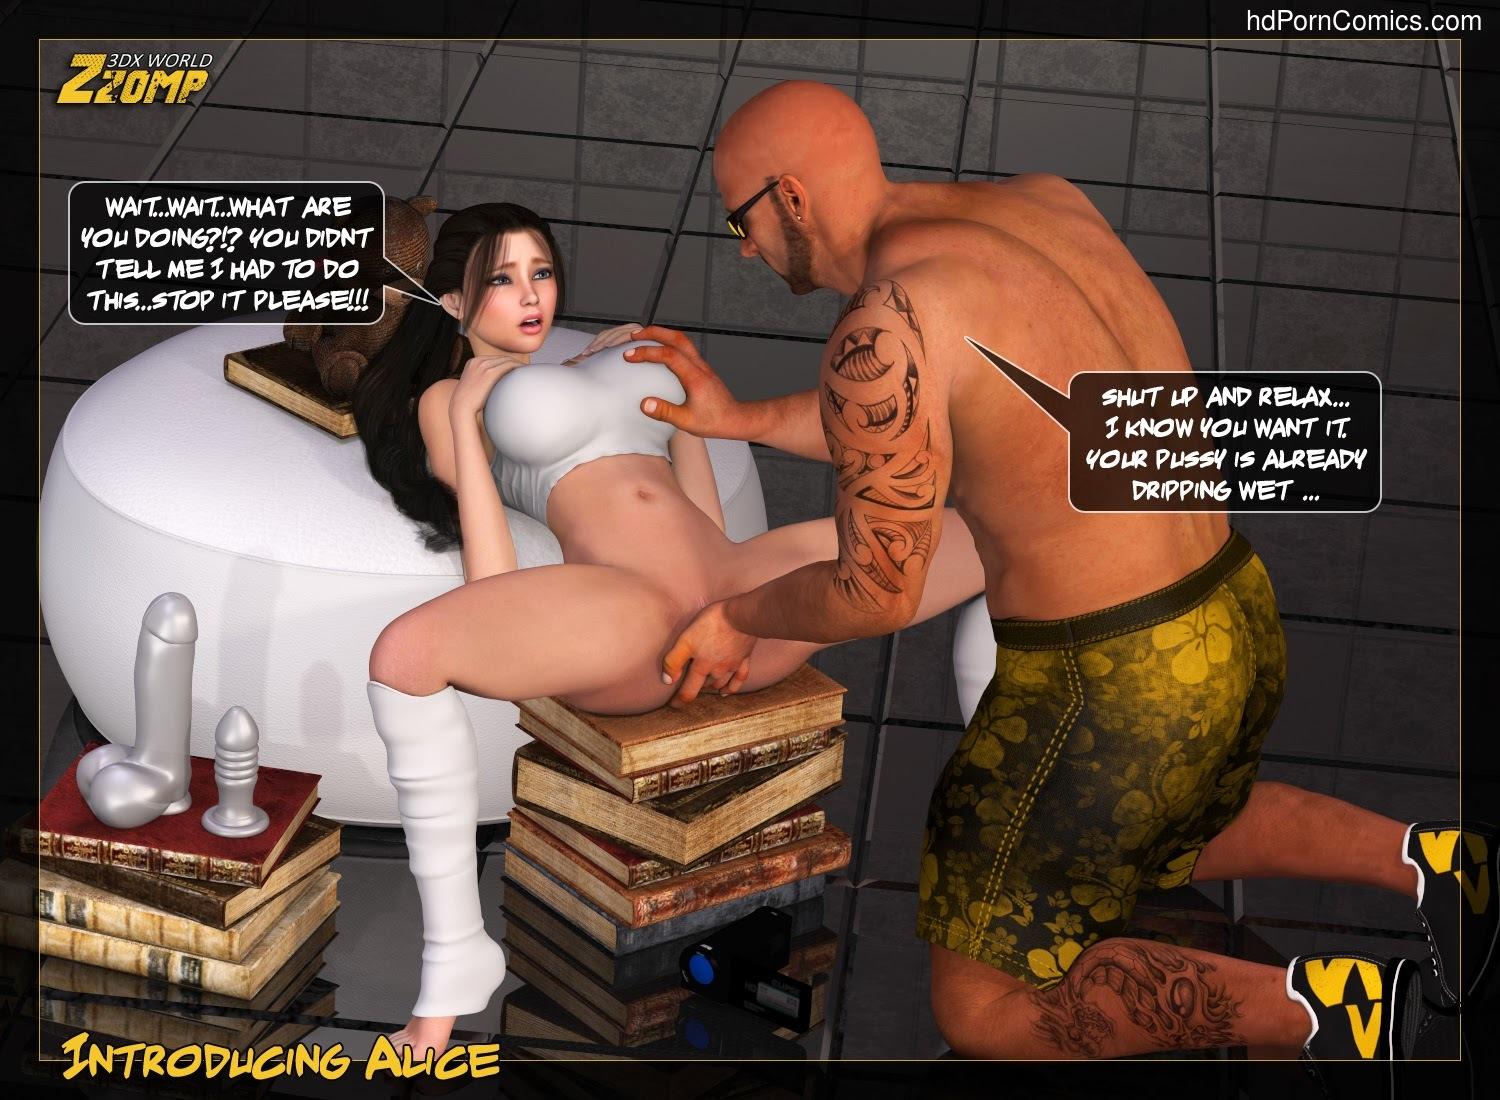 Zzomp – Introducing Alice7 free sex comic